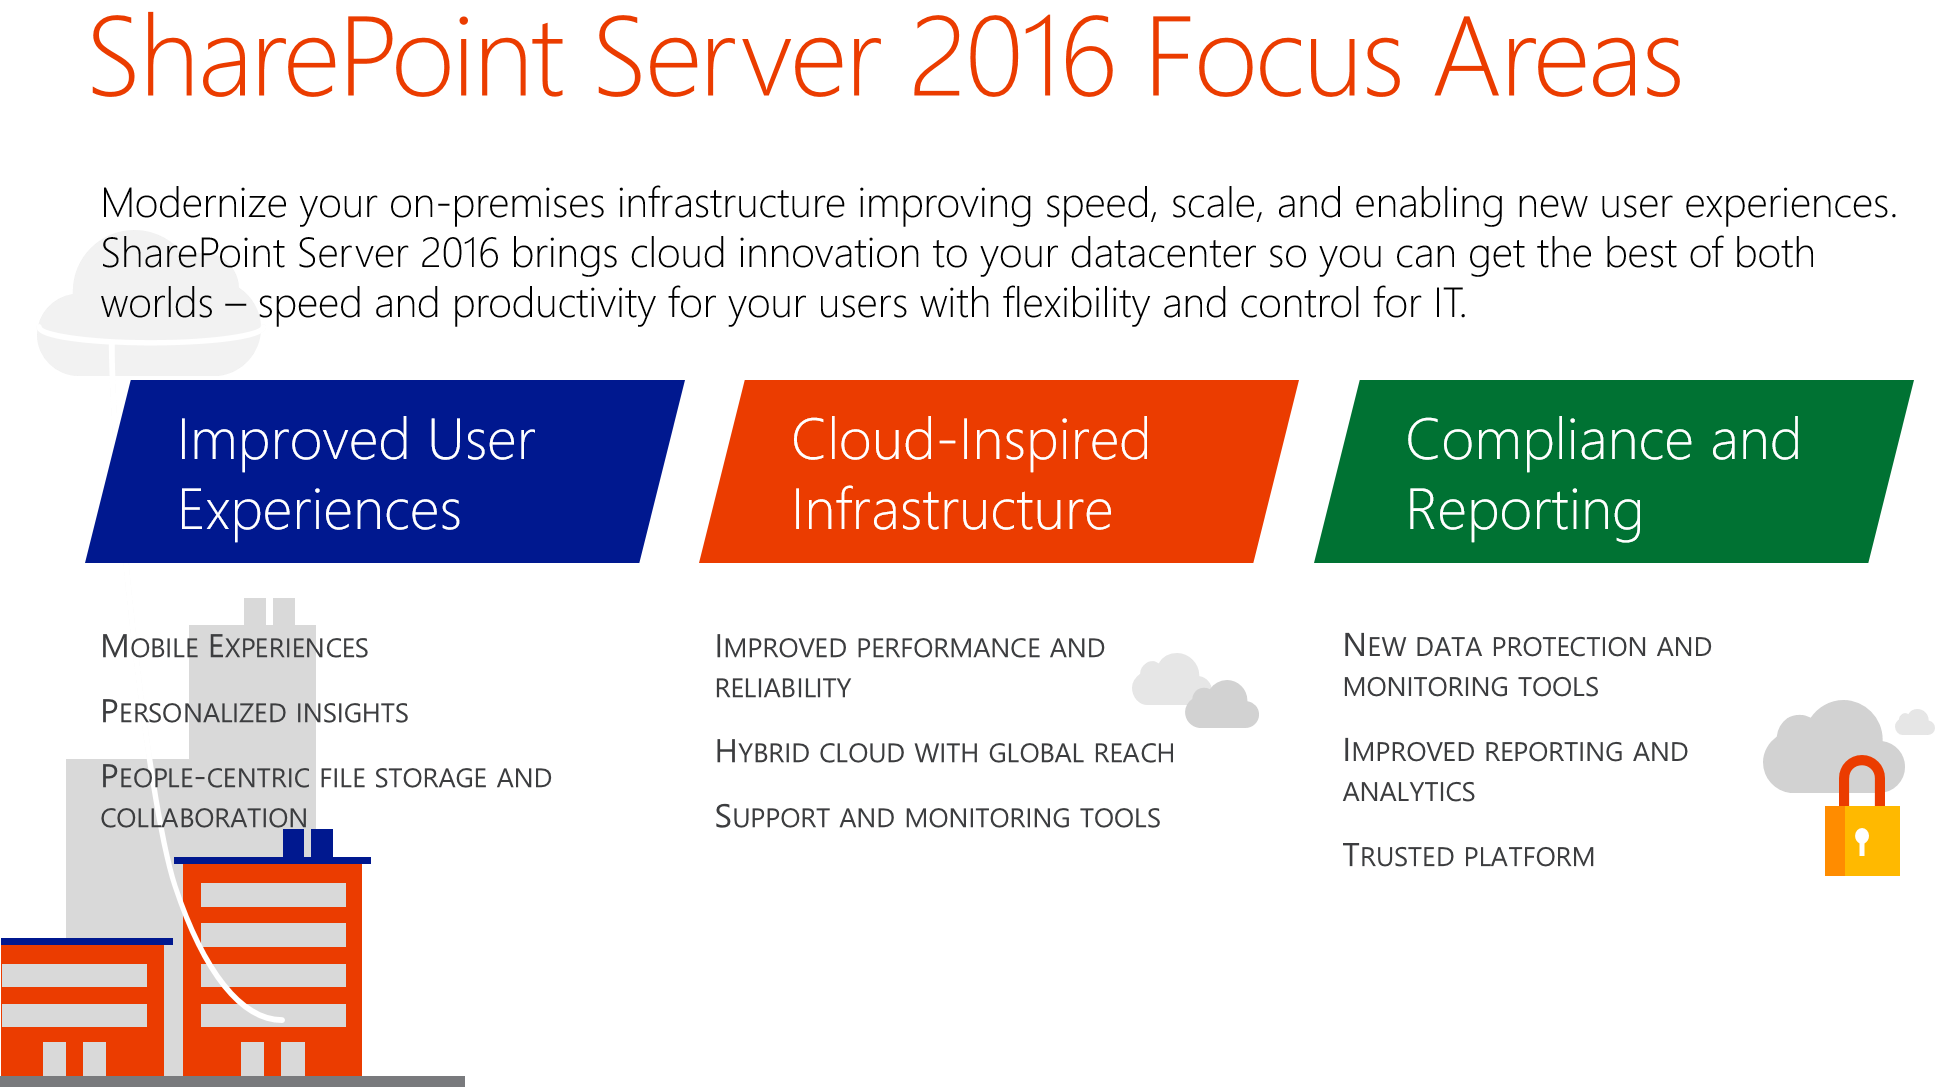 SharePoint Server 2016 Focus Areas